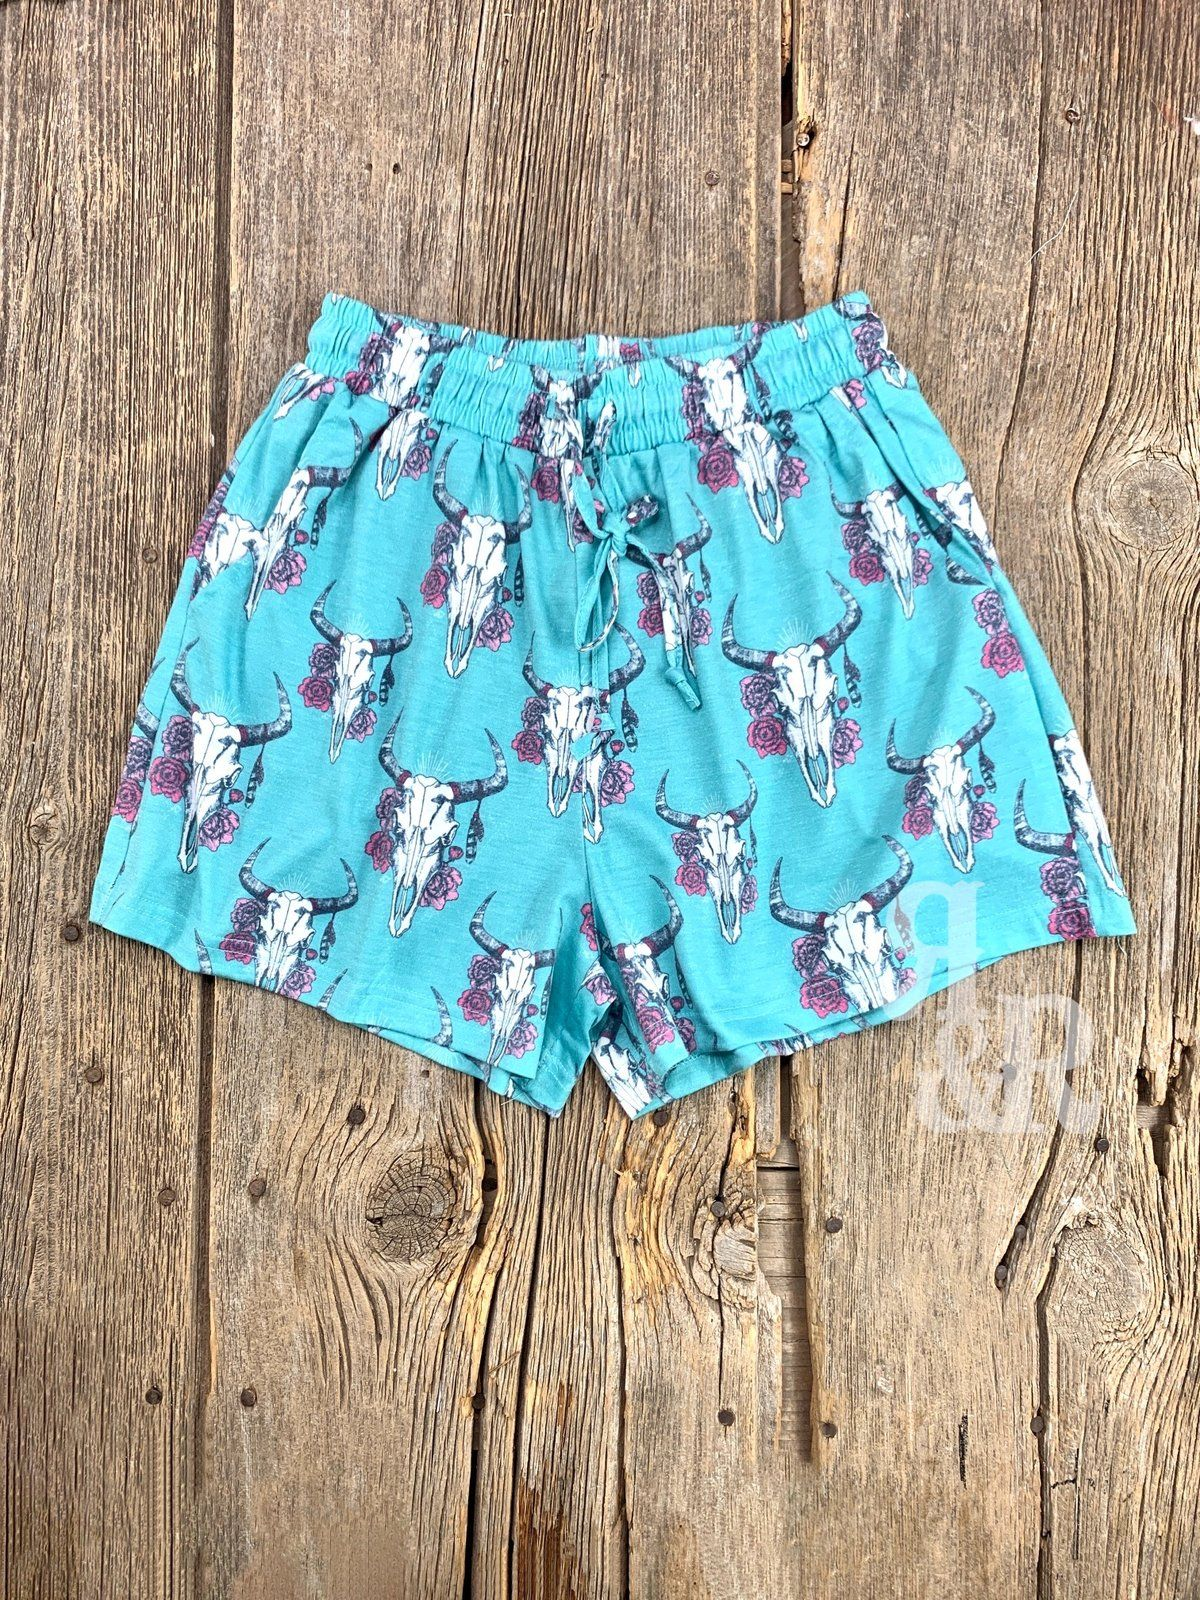 Cow Skull Turquoise Shorts Giddy Up Glamour Country Girls Outfits Turquoise Shorts